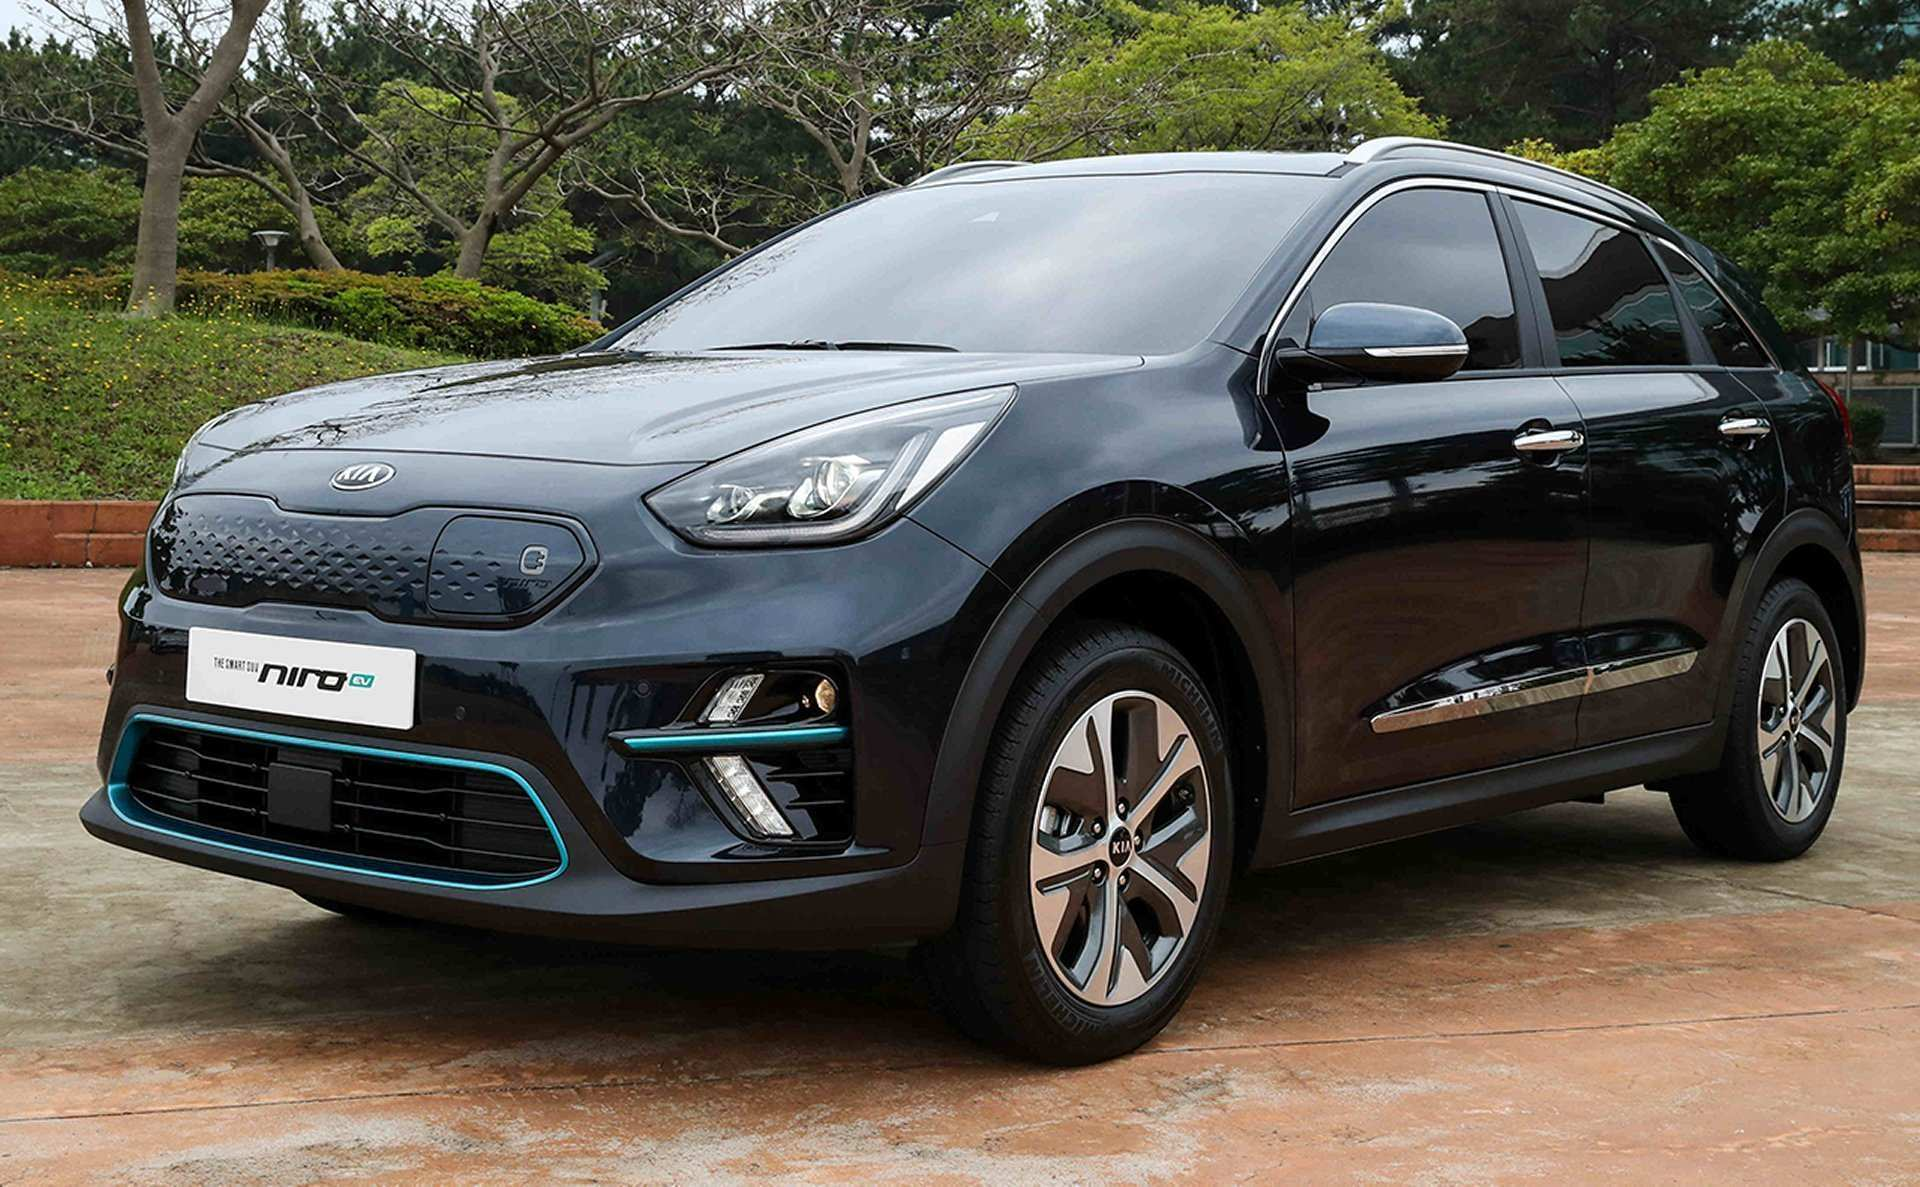 71 New Kia Niro 2020 Release Date Price Design And Review